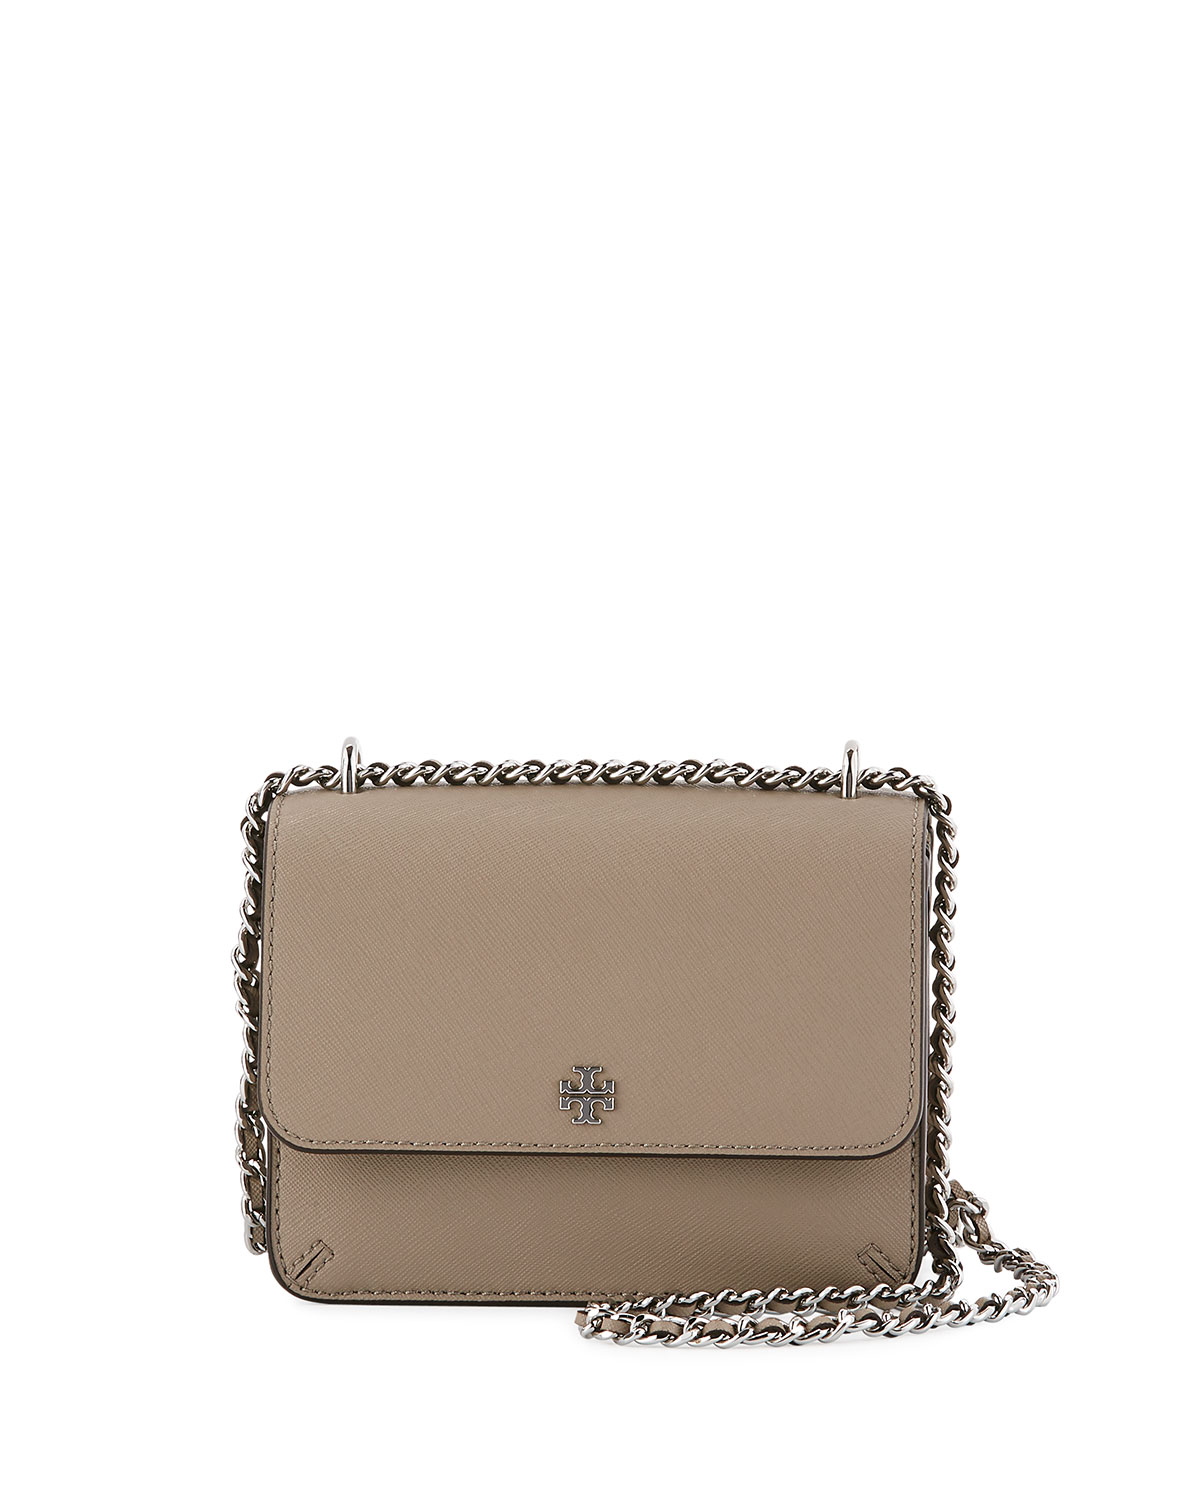 e67085f6f29 Tory Burch Robinson Mini Saffiano Shoulder Bag